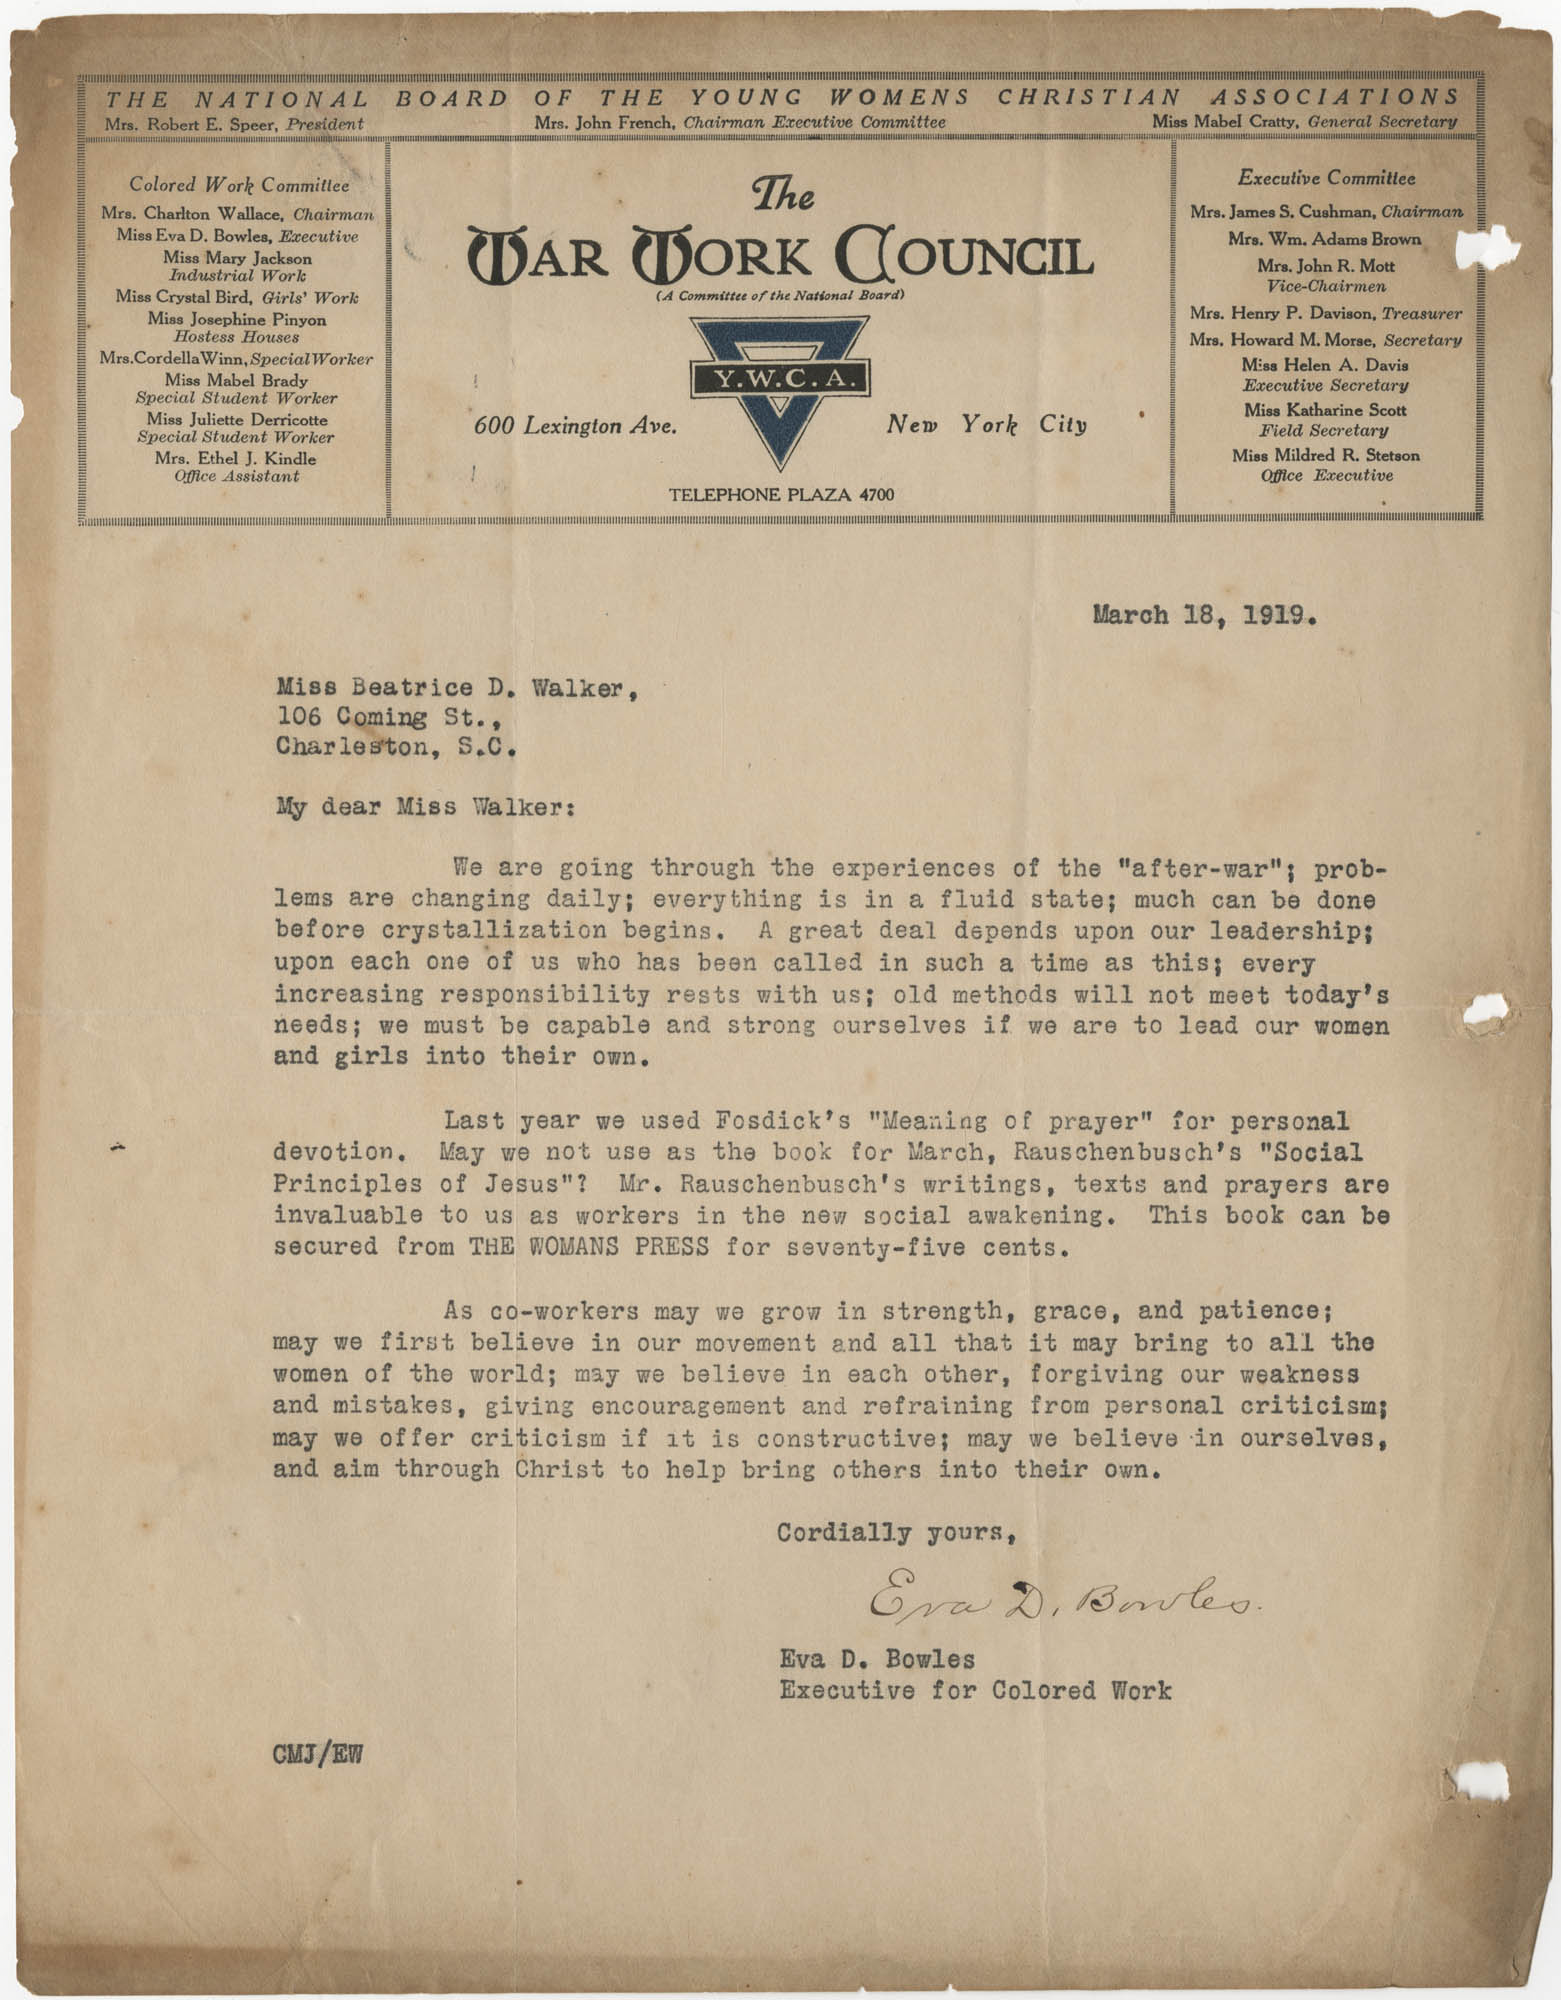 Letter from Eva D. Bowles to Beatrice D. Walker, March 18, 1919